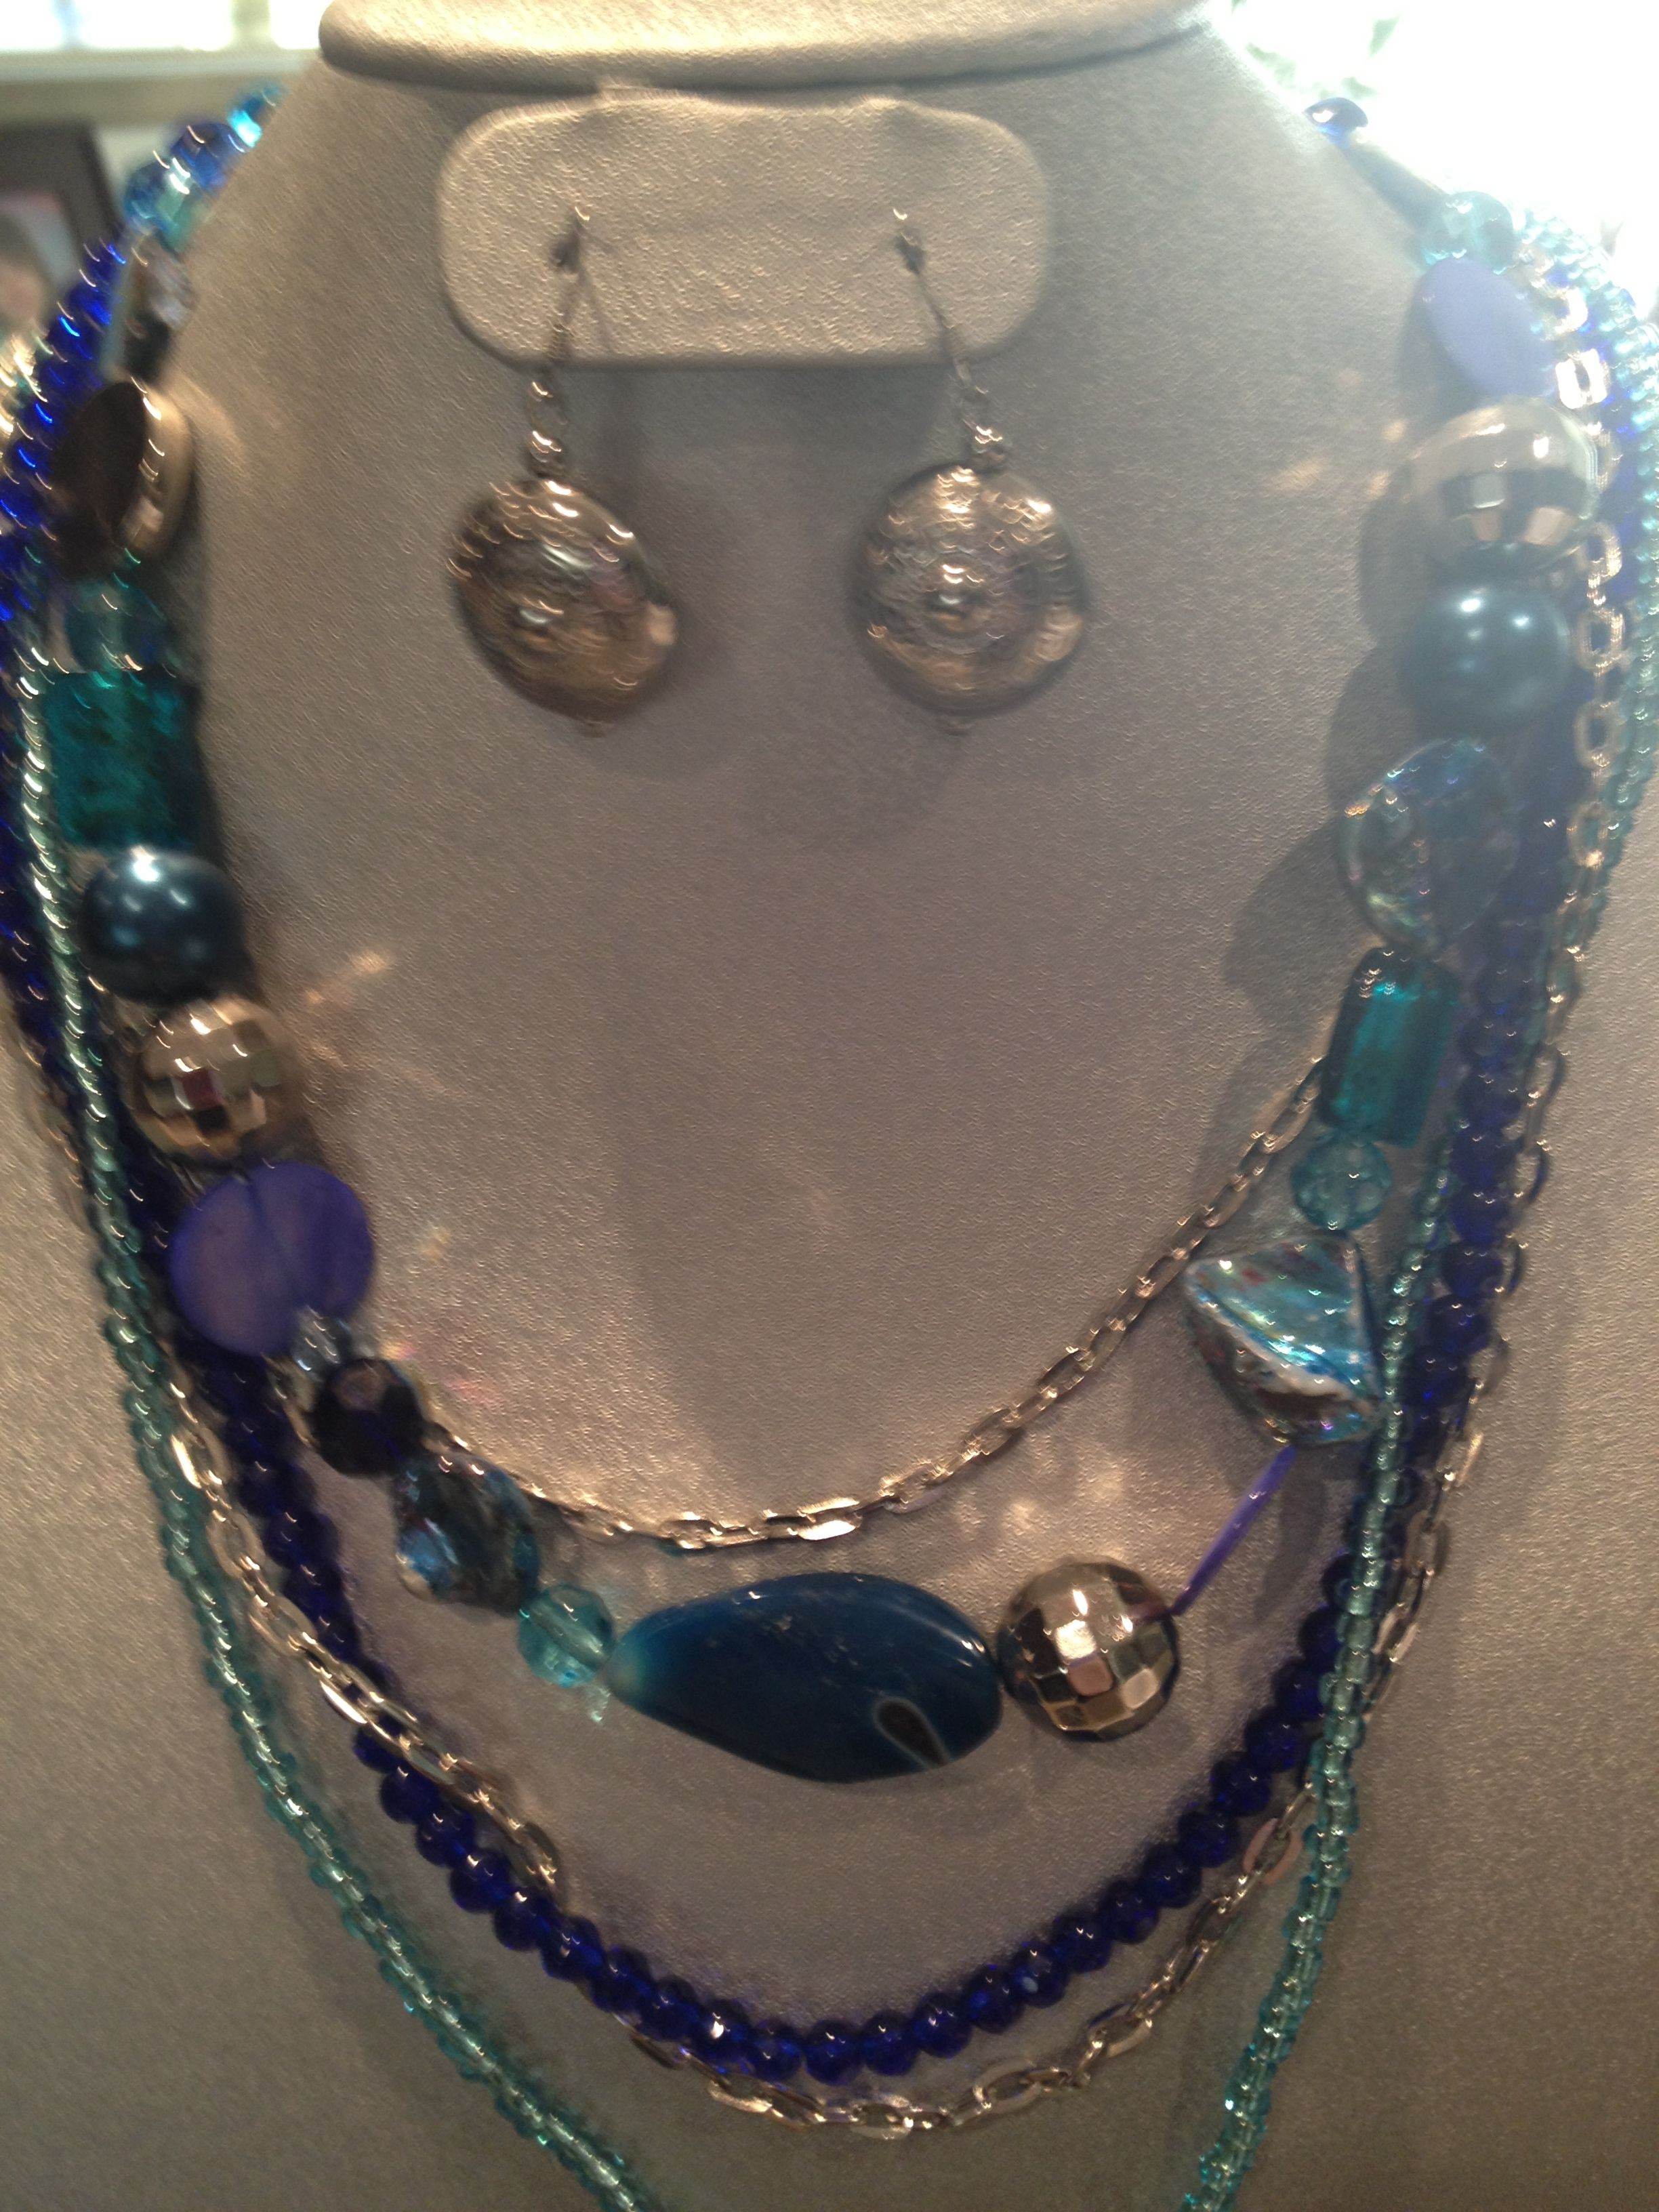 3 in one necklace in turquoise, purple or topaz - can be worn in 3 ways